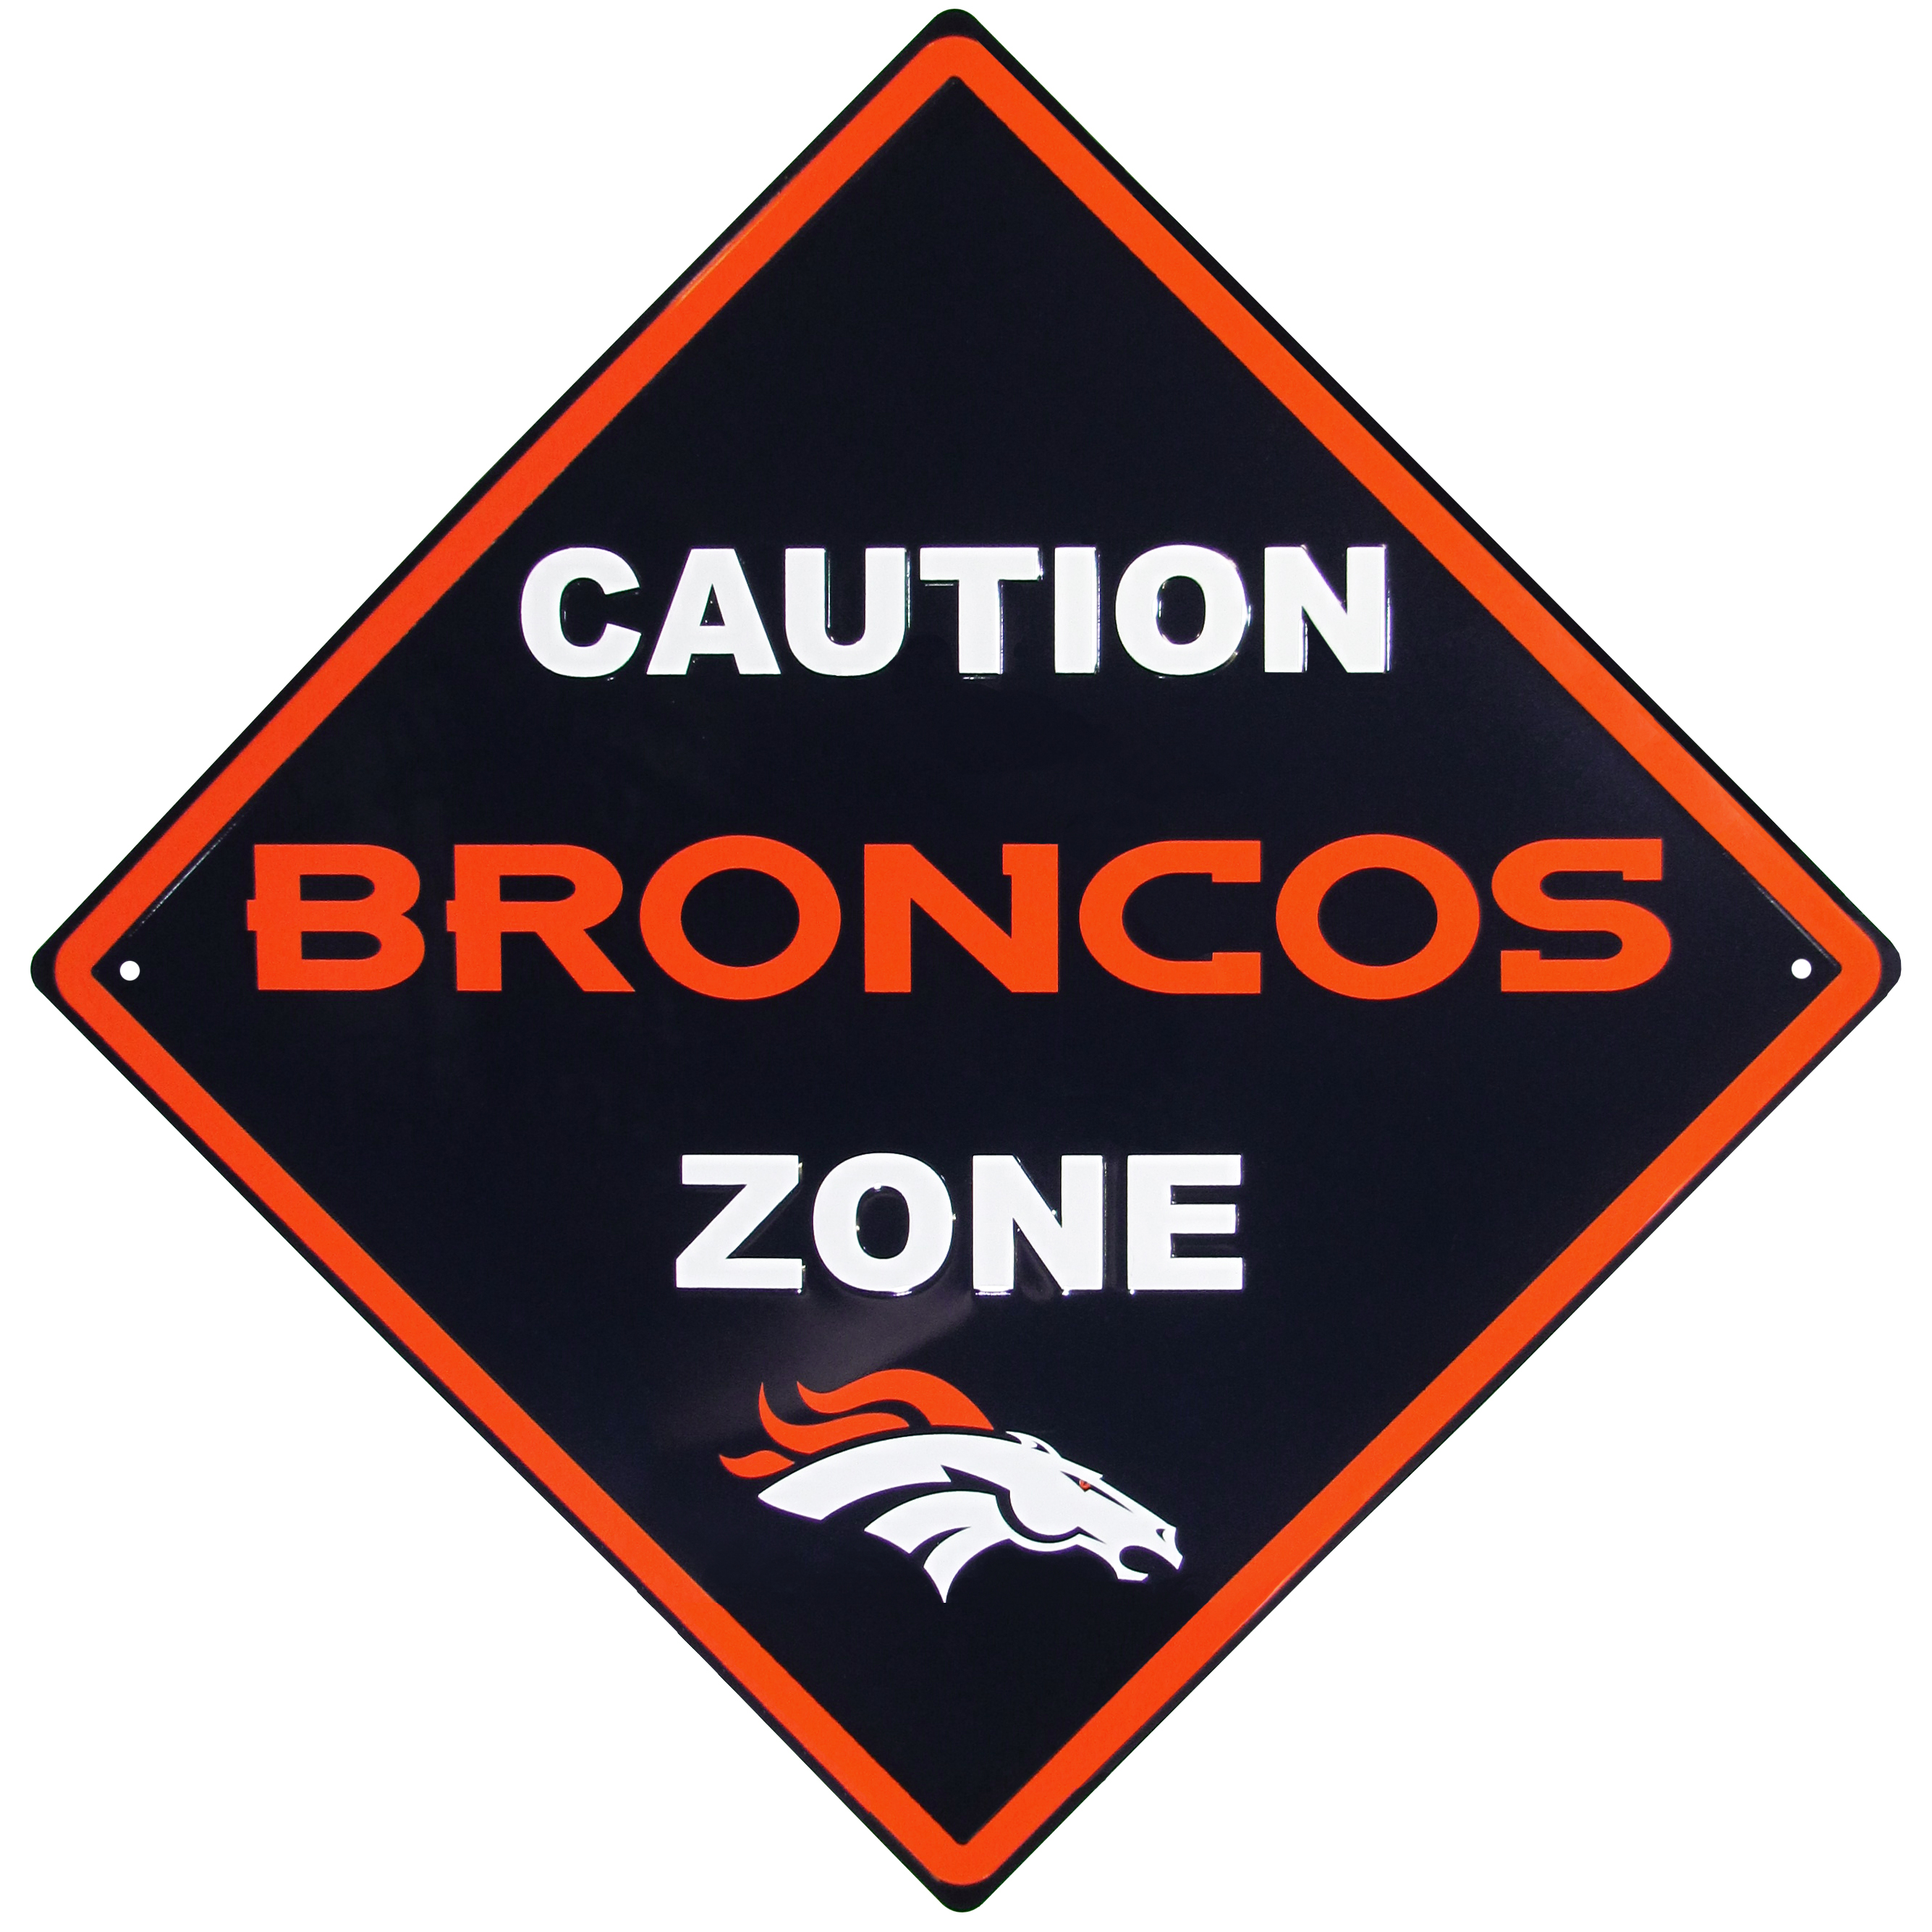 Denver Broncos Caution Wall Sign Plaque - Let everyone know that they are entering Denver Broncos territory! Our 14 inch caution wall plaques are a the perfect way to convert any room into a fan cave! The light-weight aluminum signs mount easily to any wall and are perfect for the home or office.